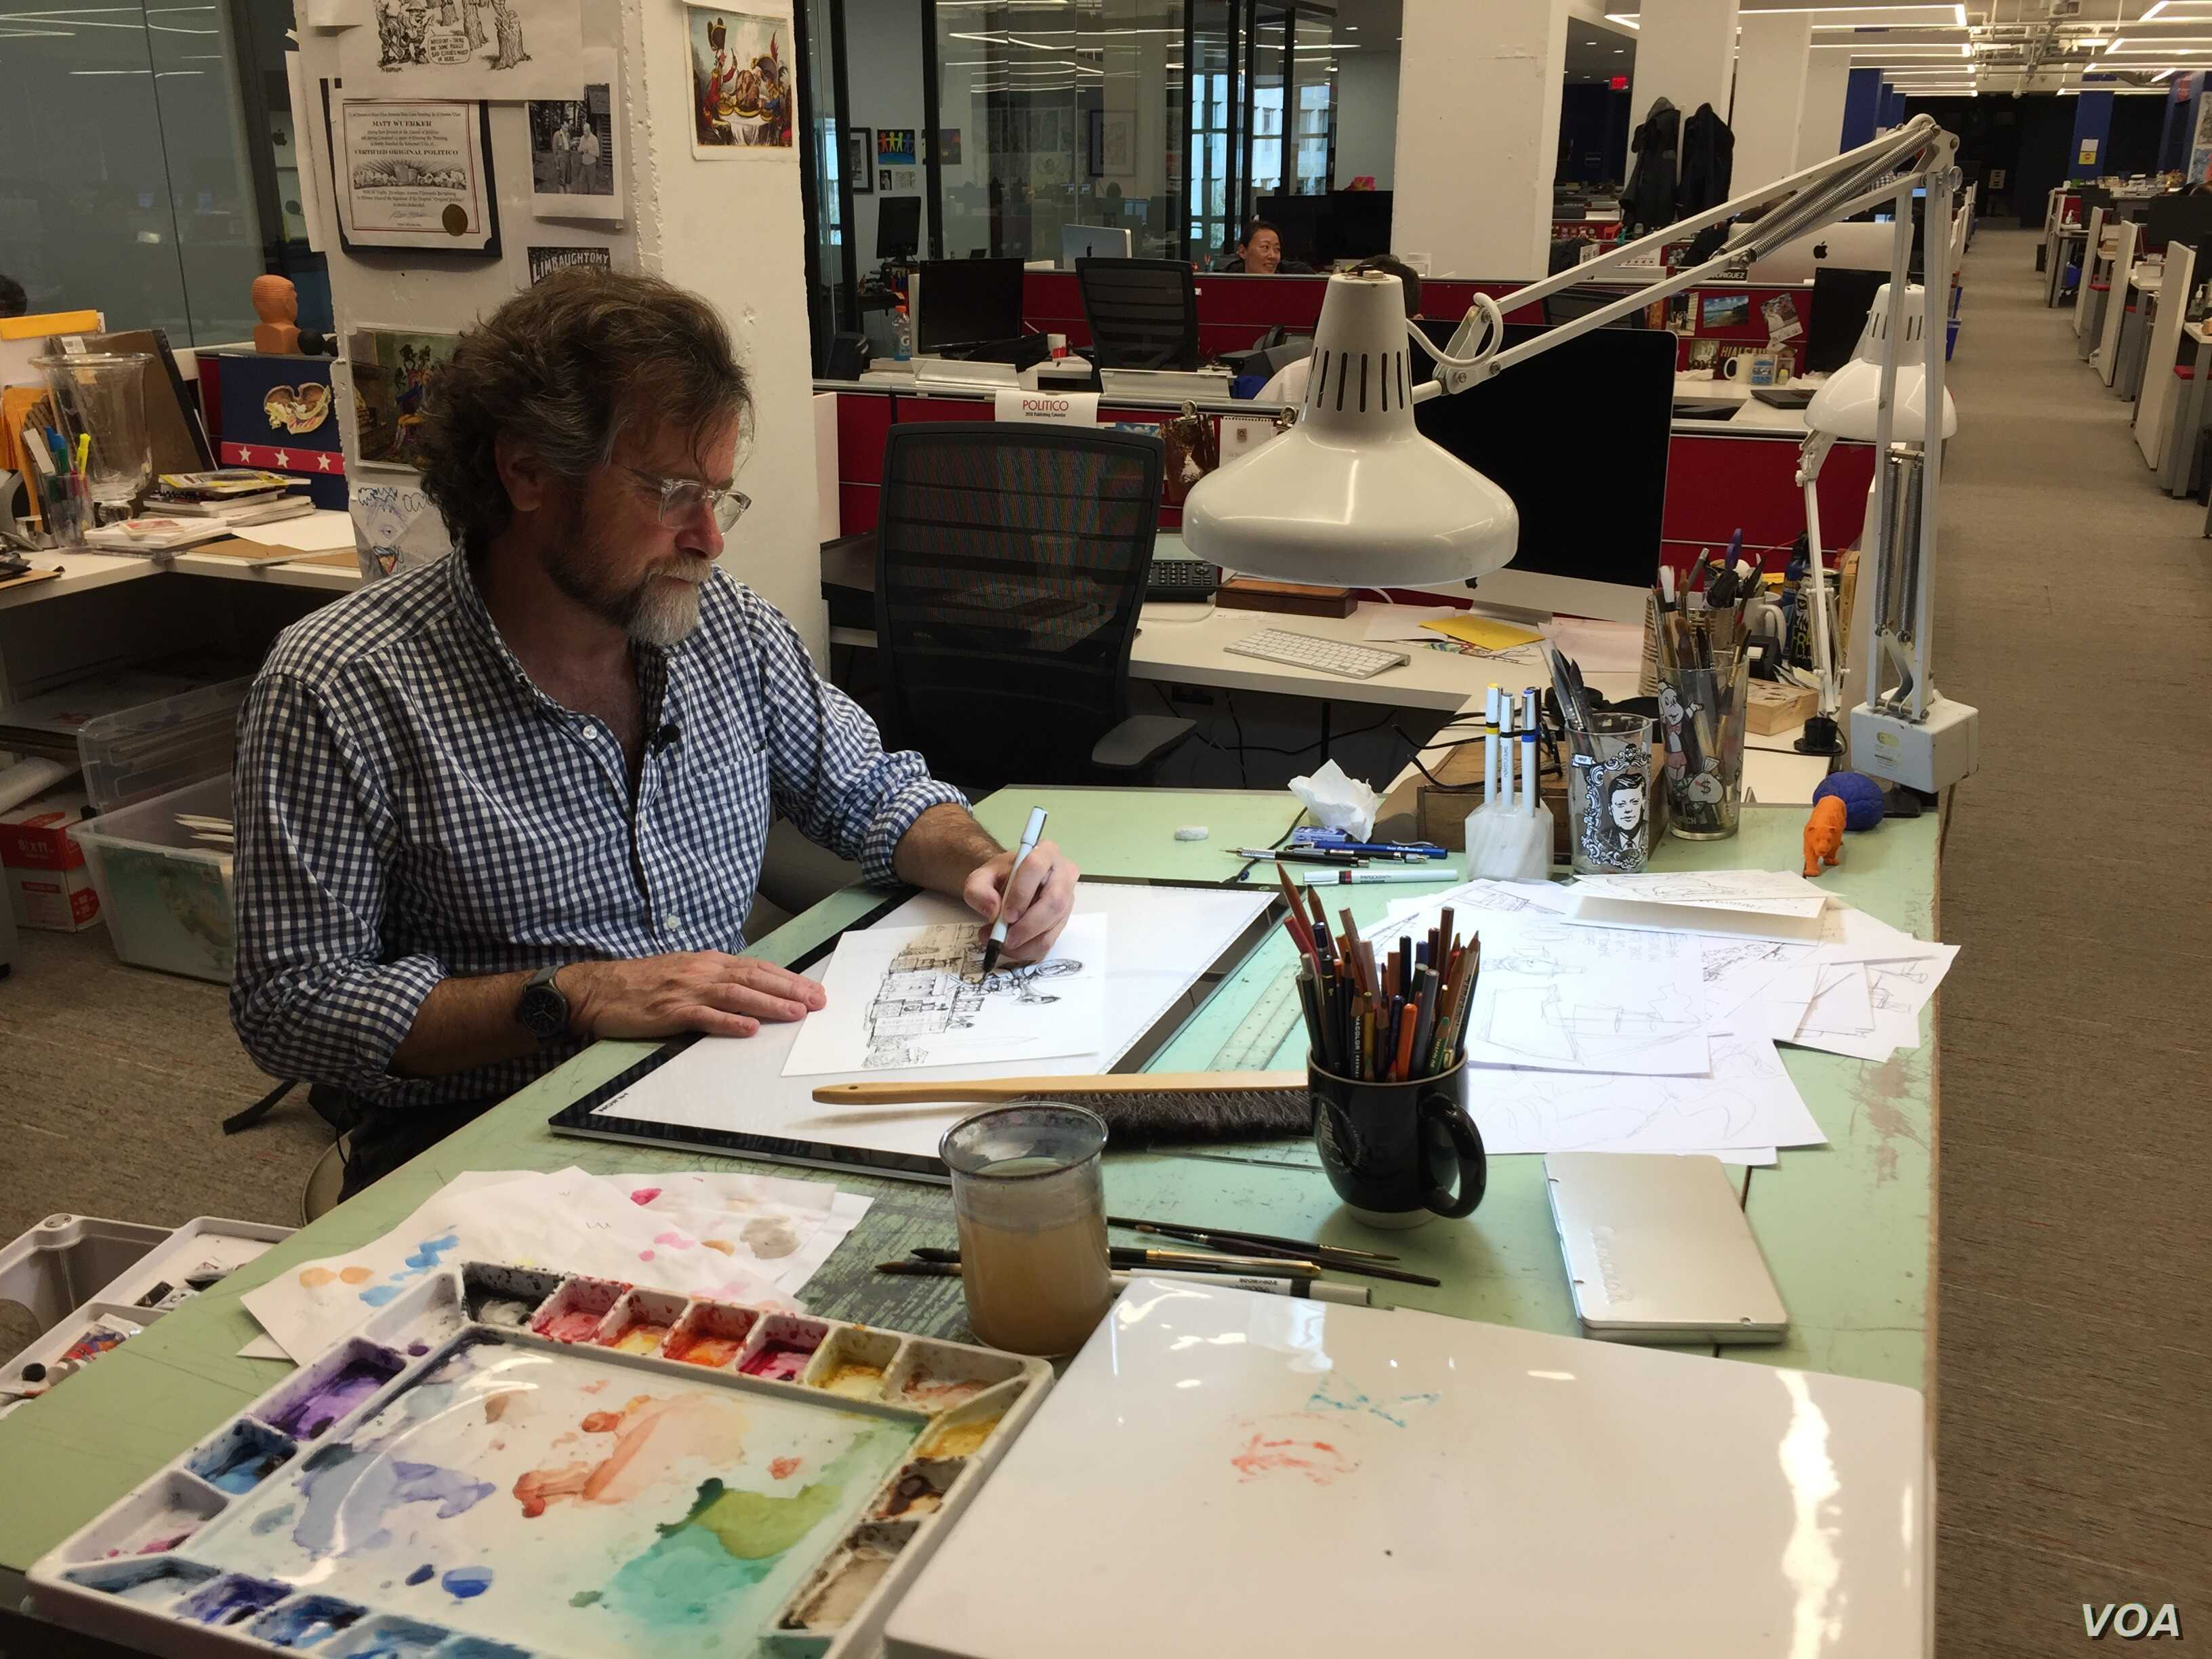 Matt Wuerker, a Pulitzer-Prize winning cartoonist at Politico, creates an average of three cartoons a week.